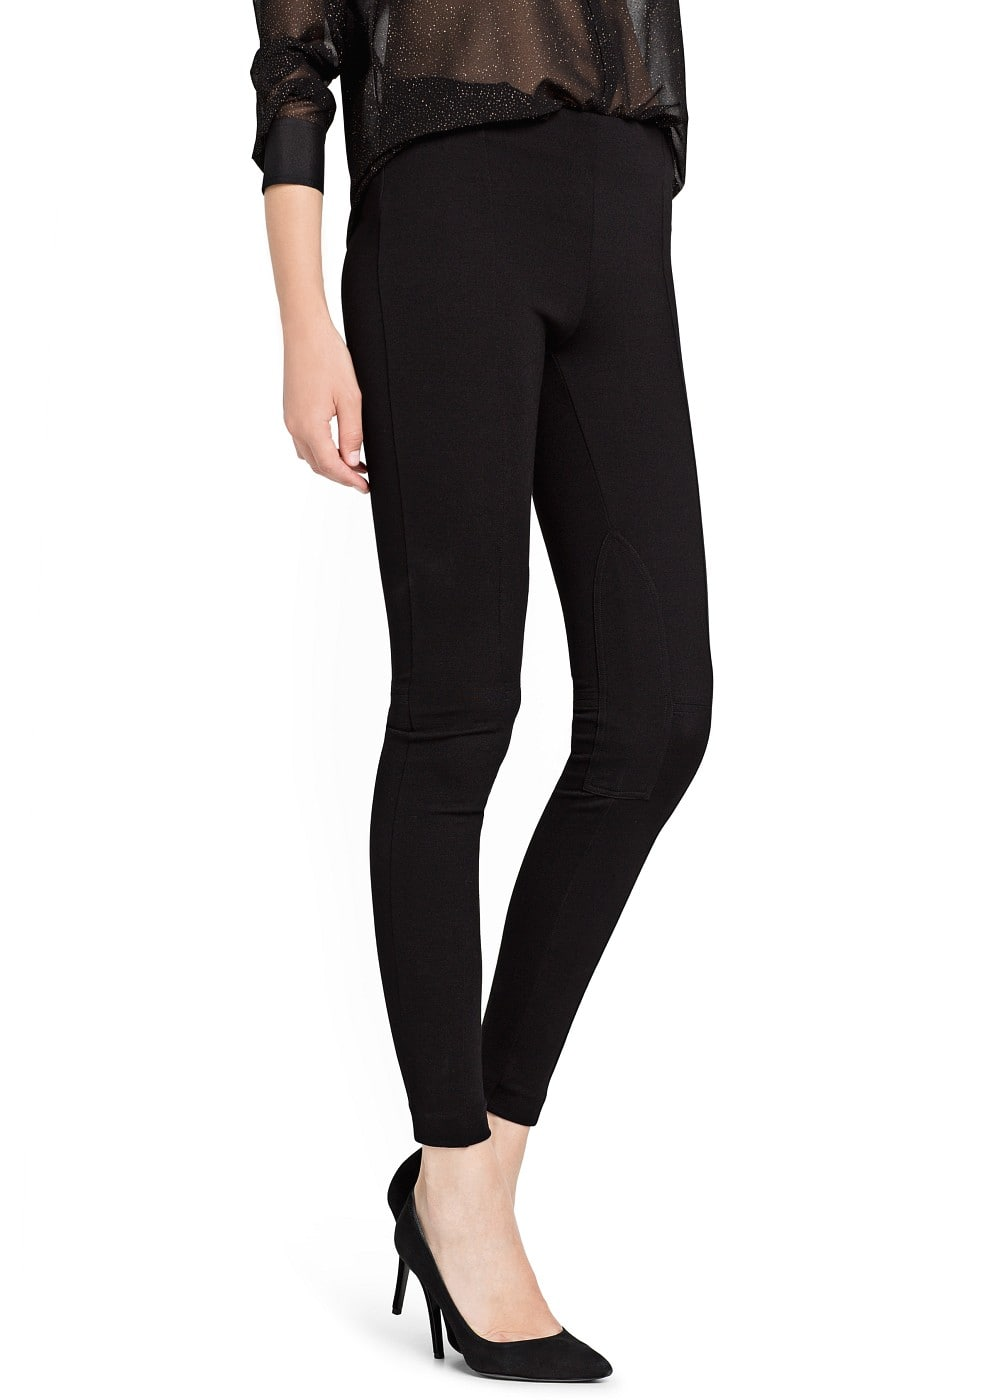 Horse-riding style leggings